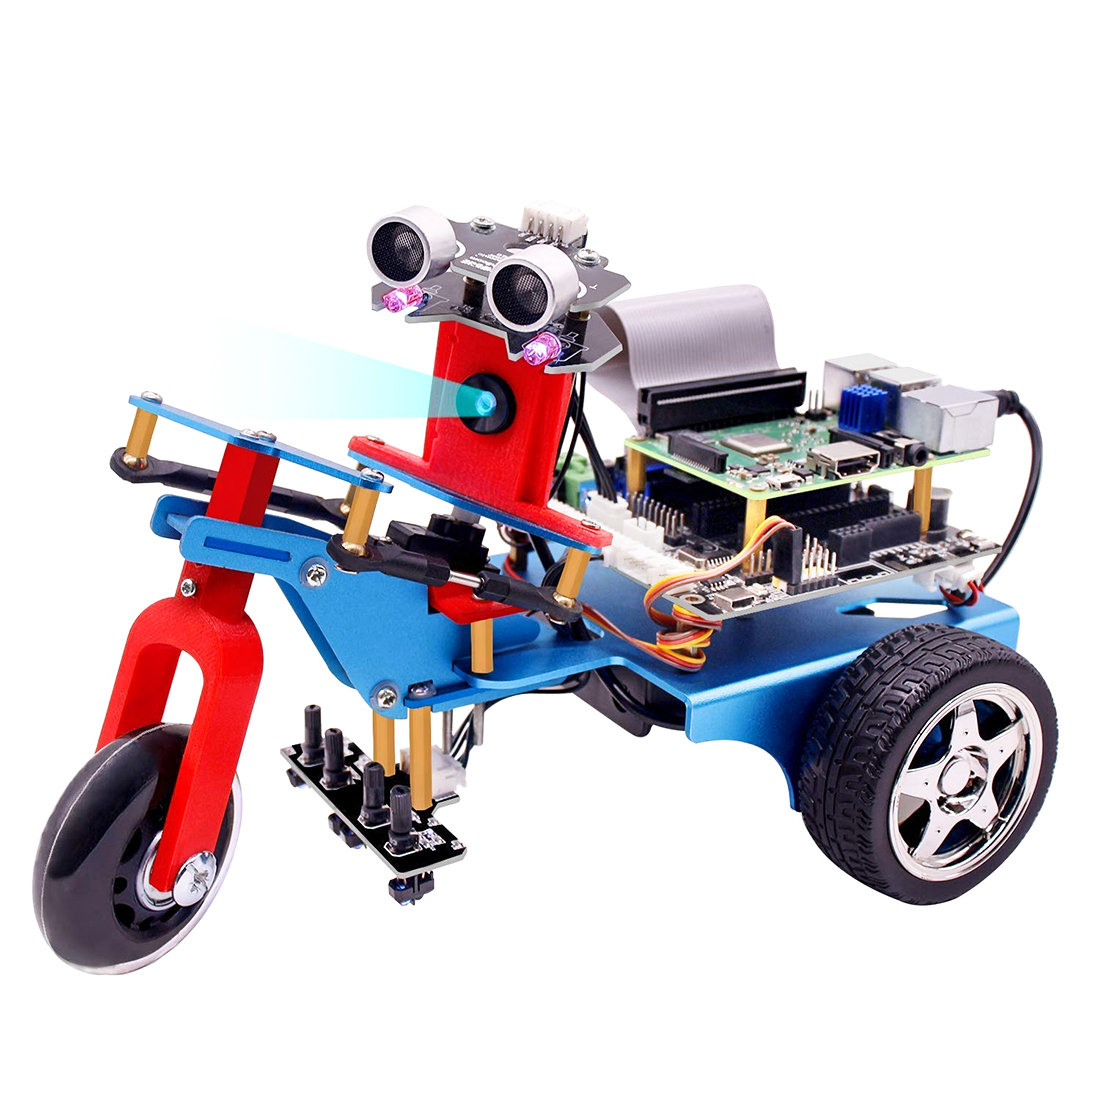 New Three-wheeled Car Shape Smart Robot Car Kit DIY Programmable Robot Kit For Raspberry4/1G